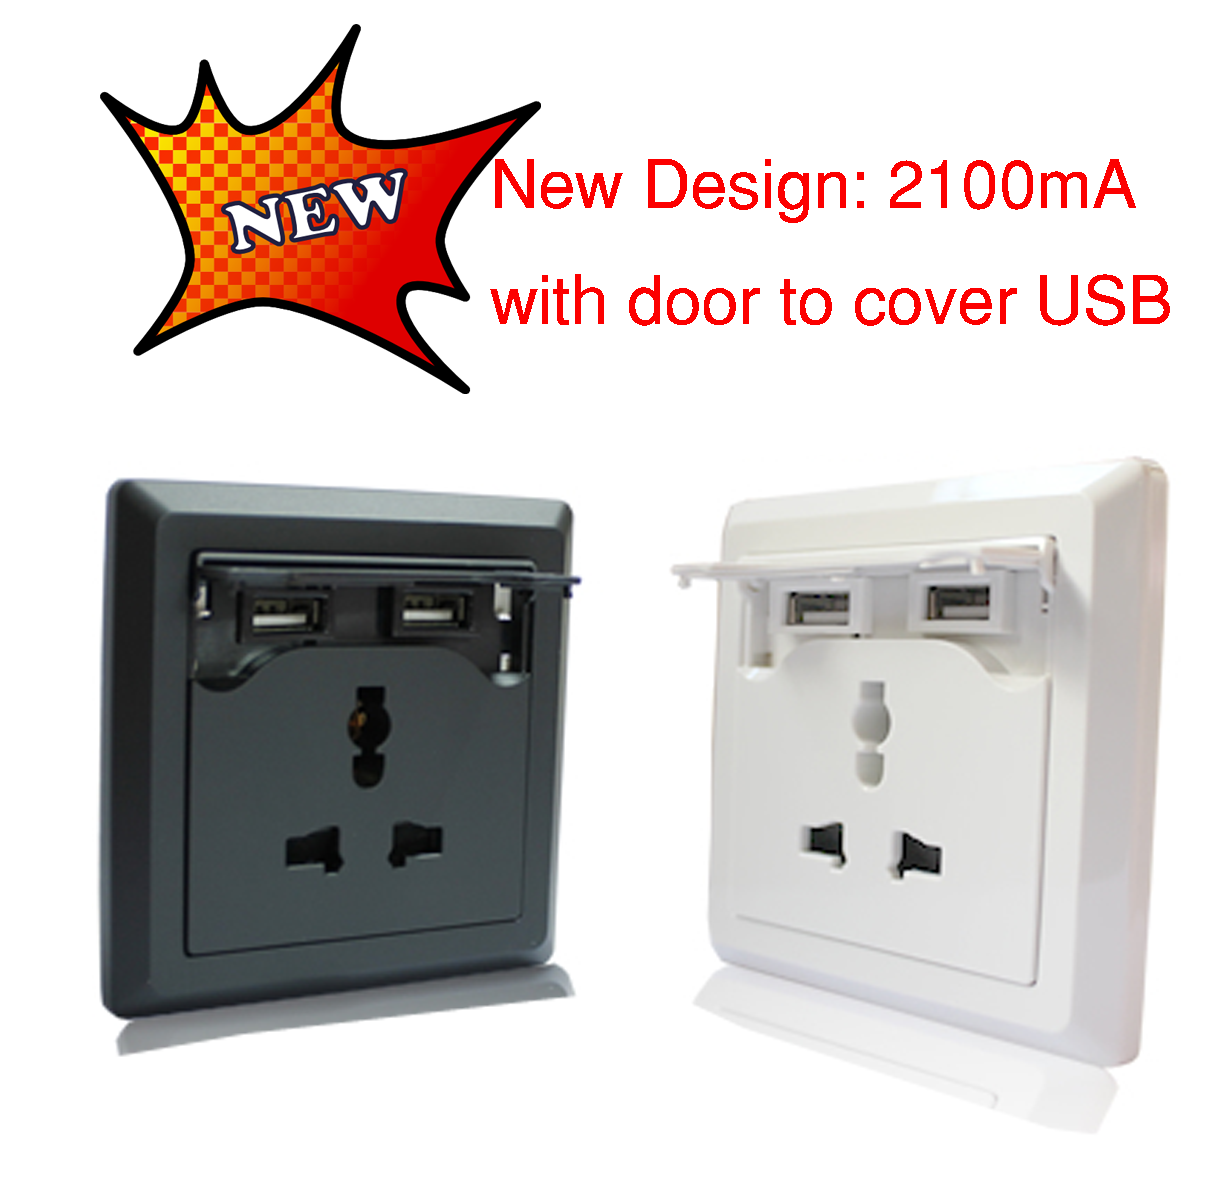 Wall outlet with two integrated USB ports for powering and charging USB devices